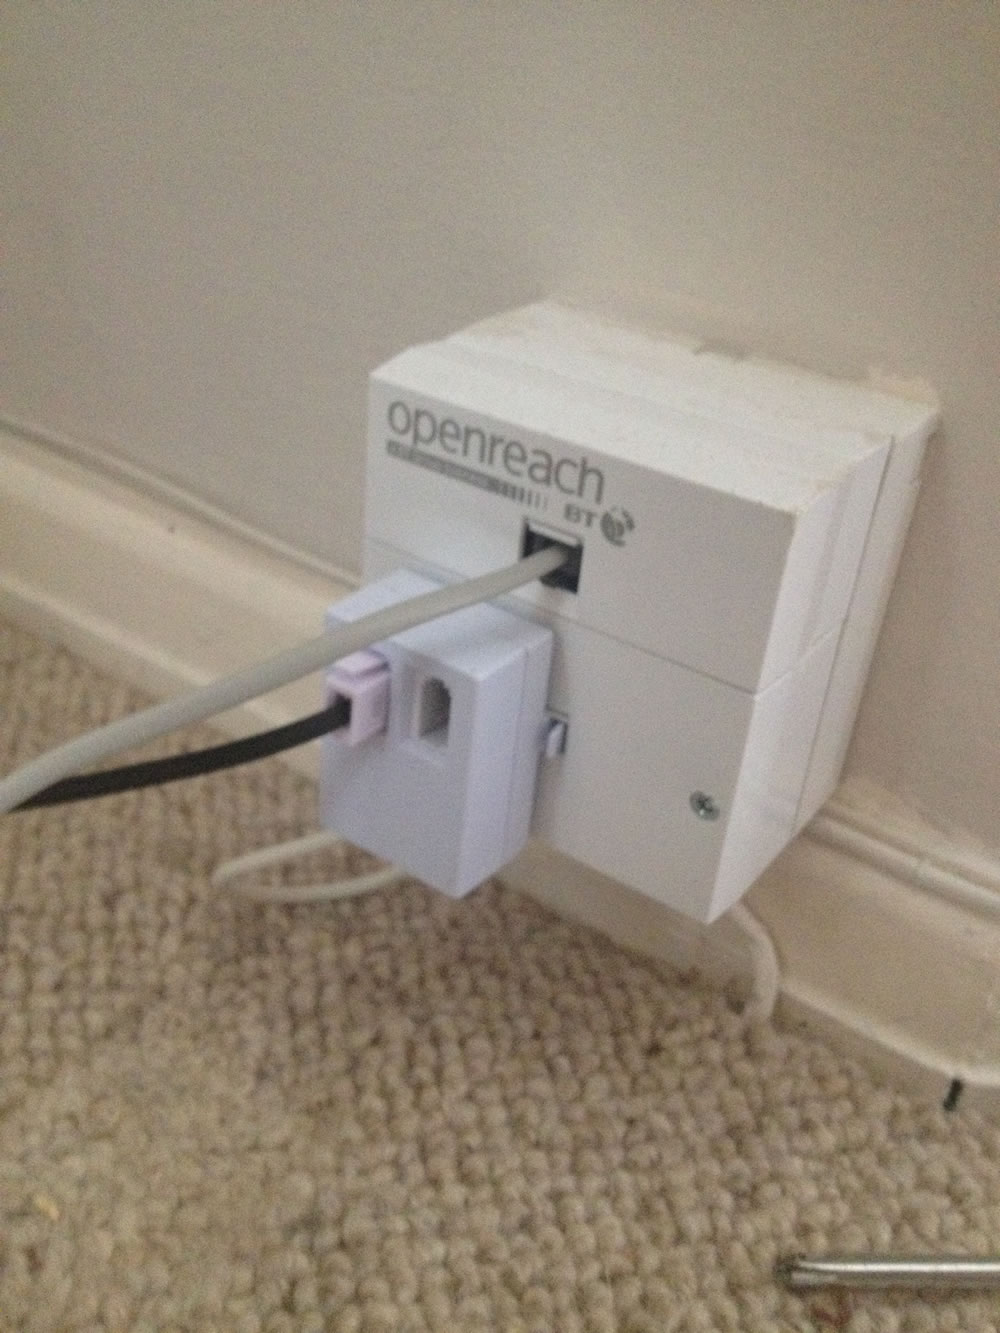 Solved Faulty Bt Openreach Box Community Wiring A Mains Socket The Microfilter Doesnt Work Unplug And Plug In Just Black Phone Cable Remove Screws Into